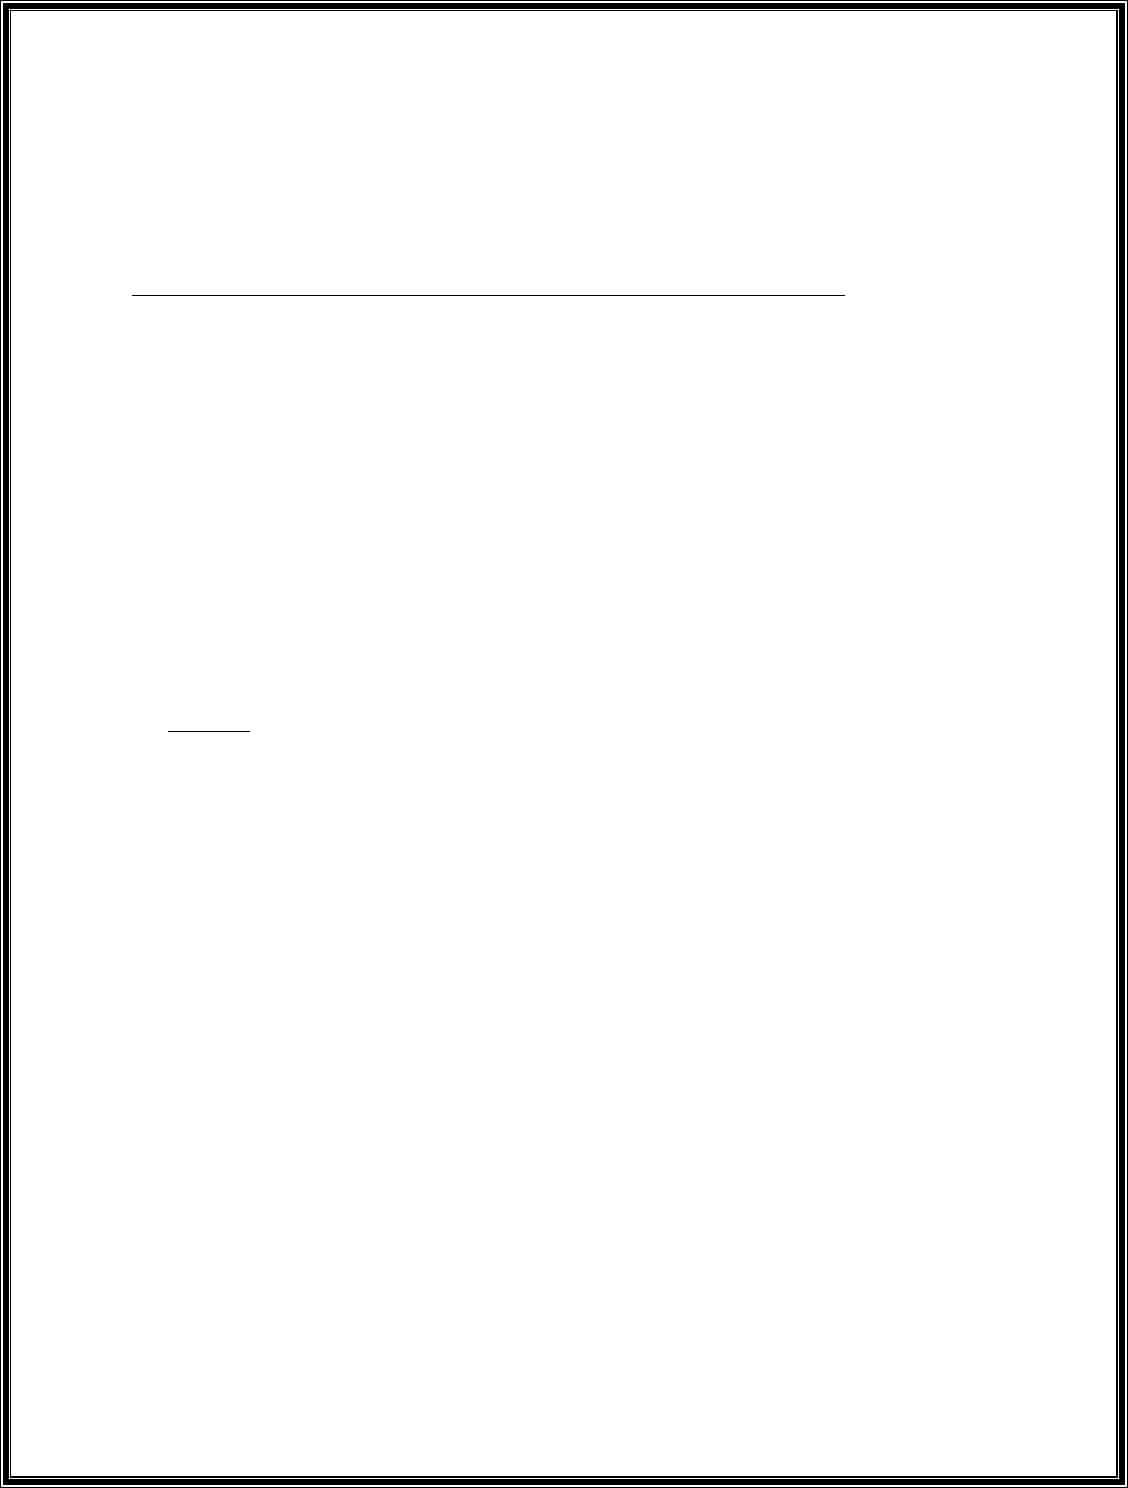 Nanny Contract Template In Word And Pdf Formats - Page 5 Of 5 With Nanny Contract Template Word